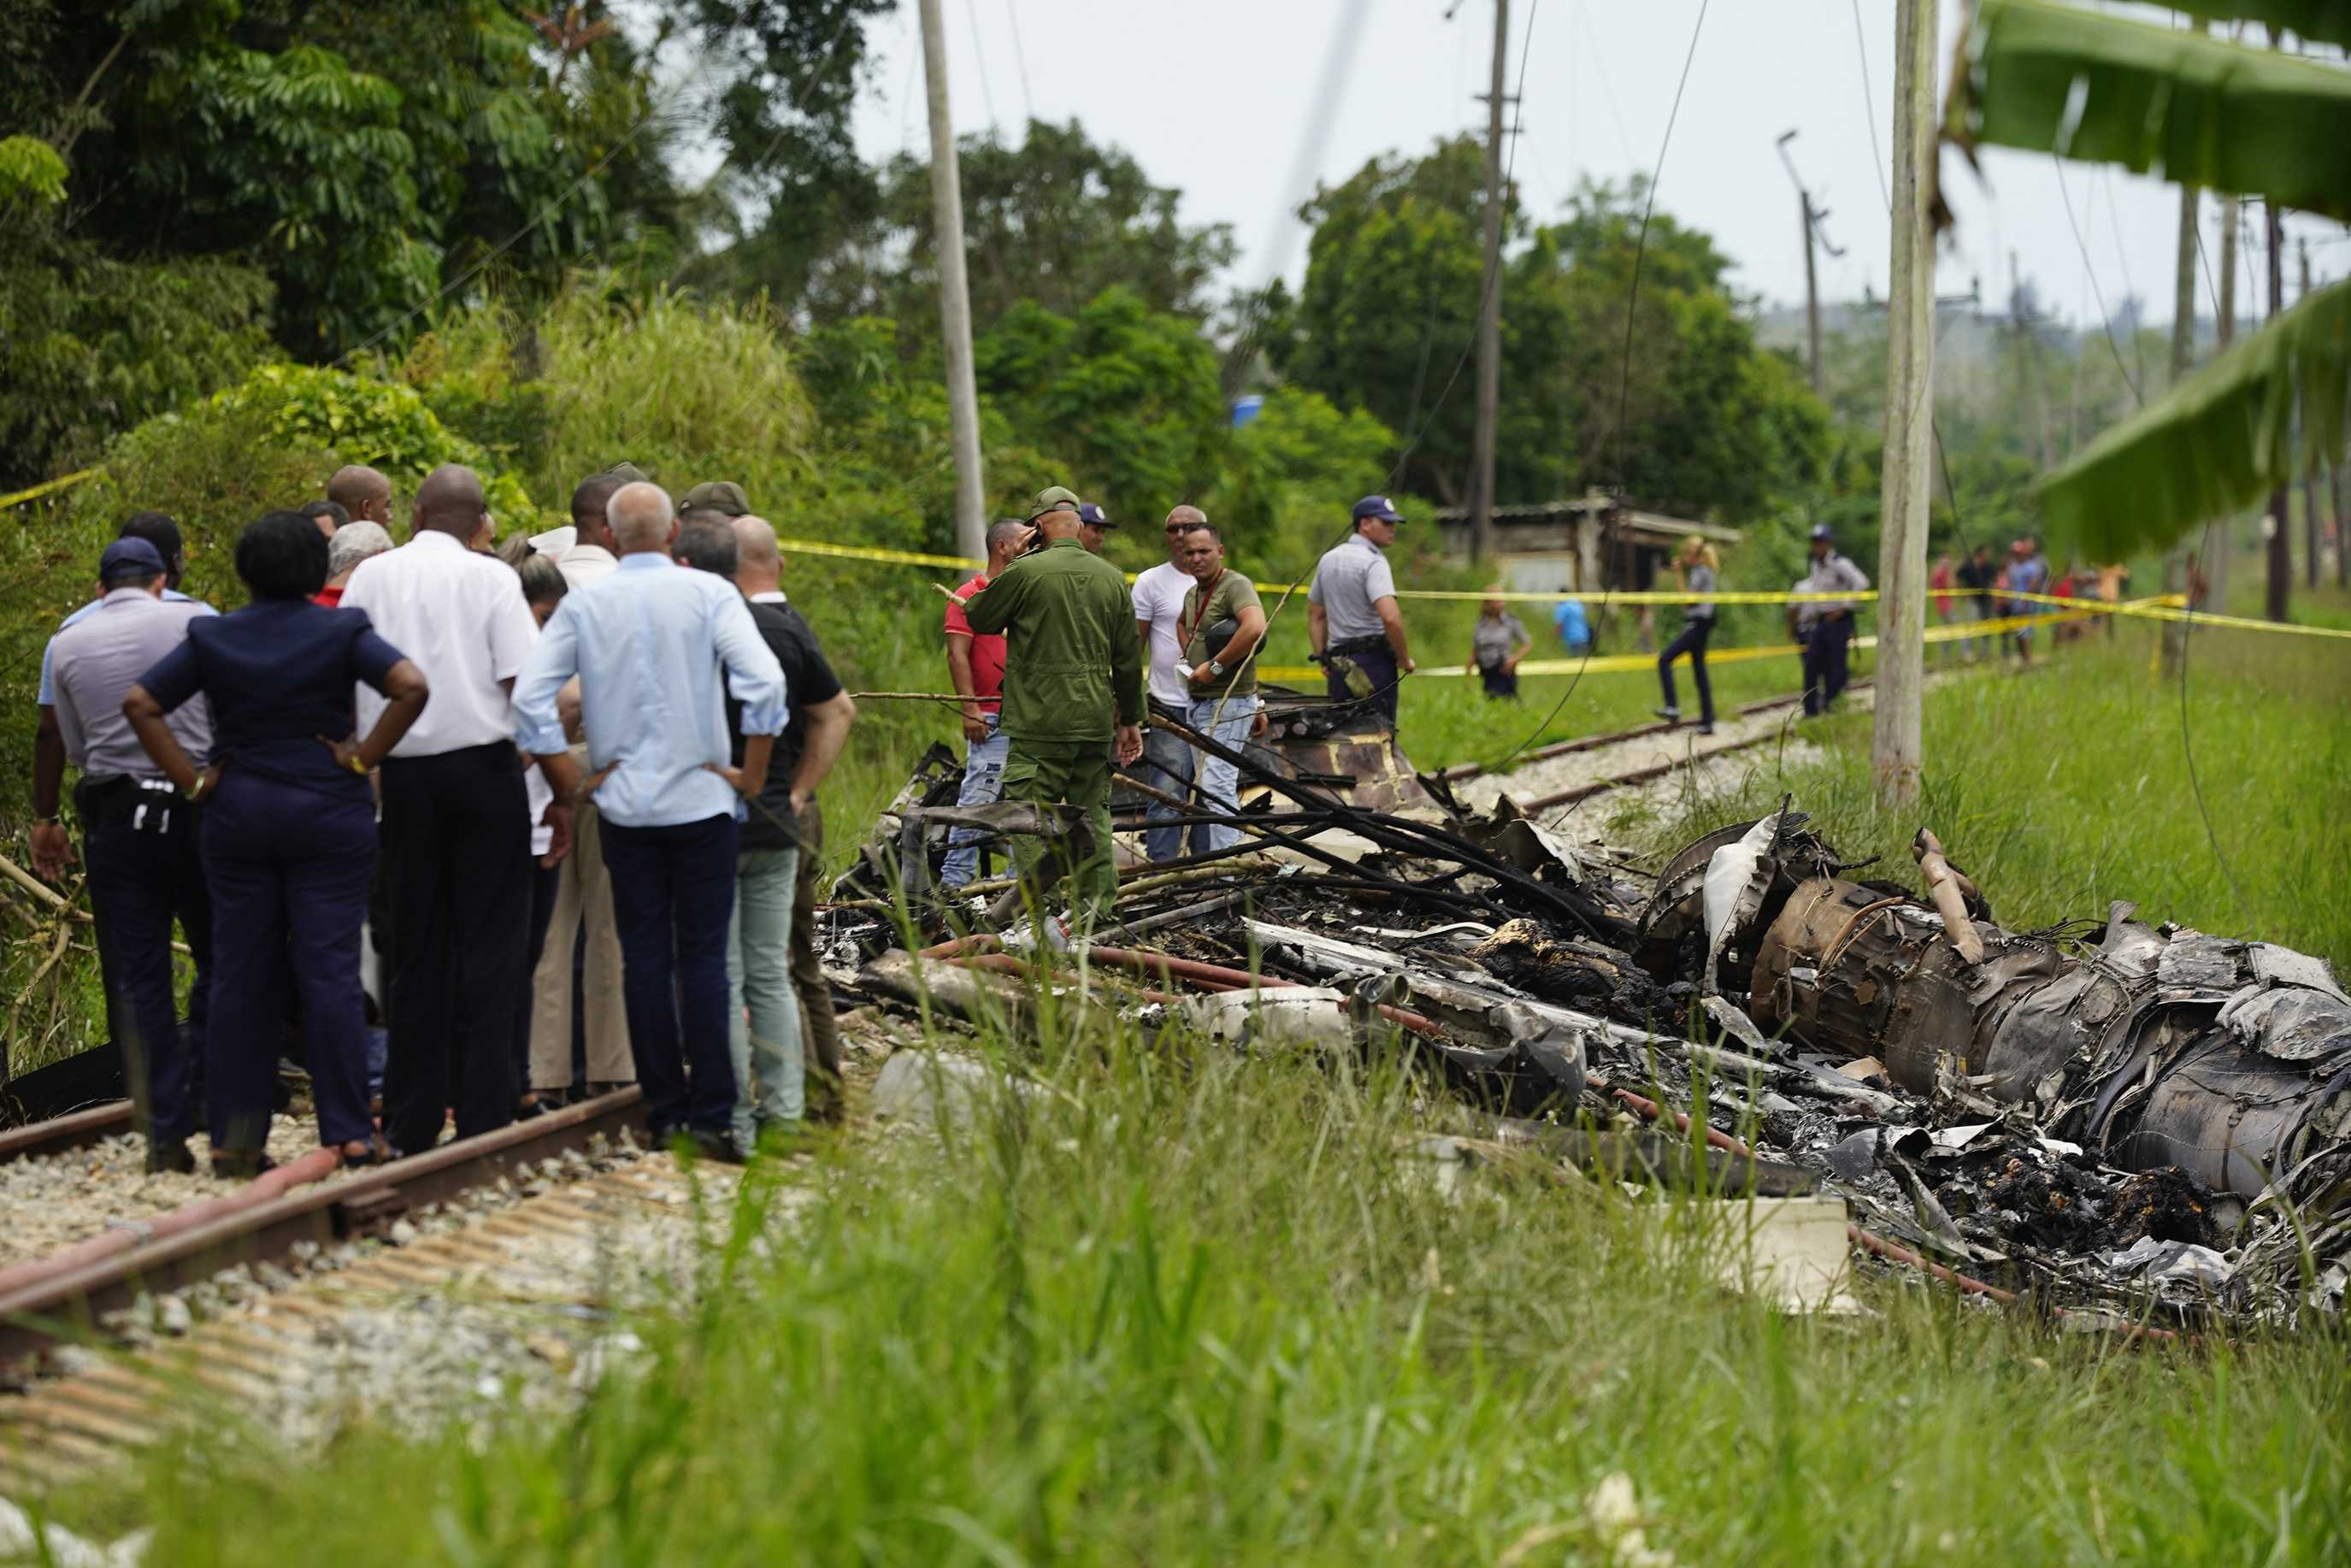 Company in Cuba plane crash had received safety complaints